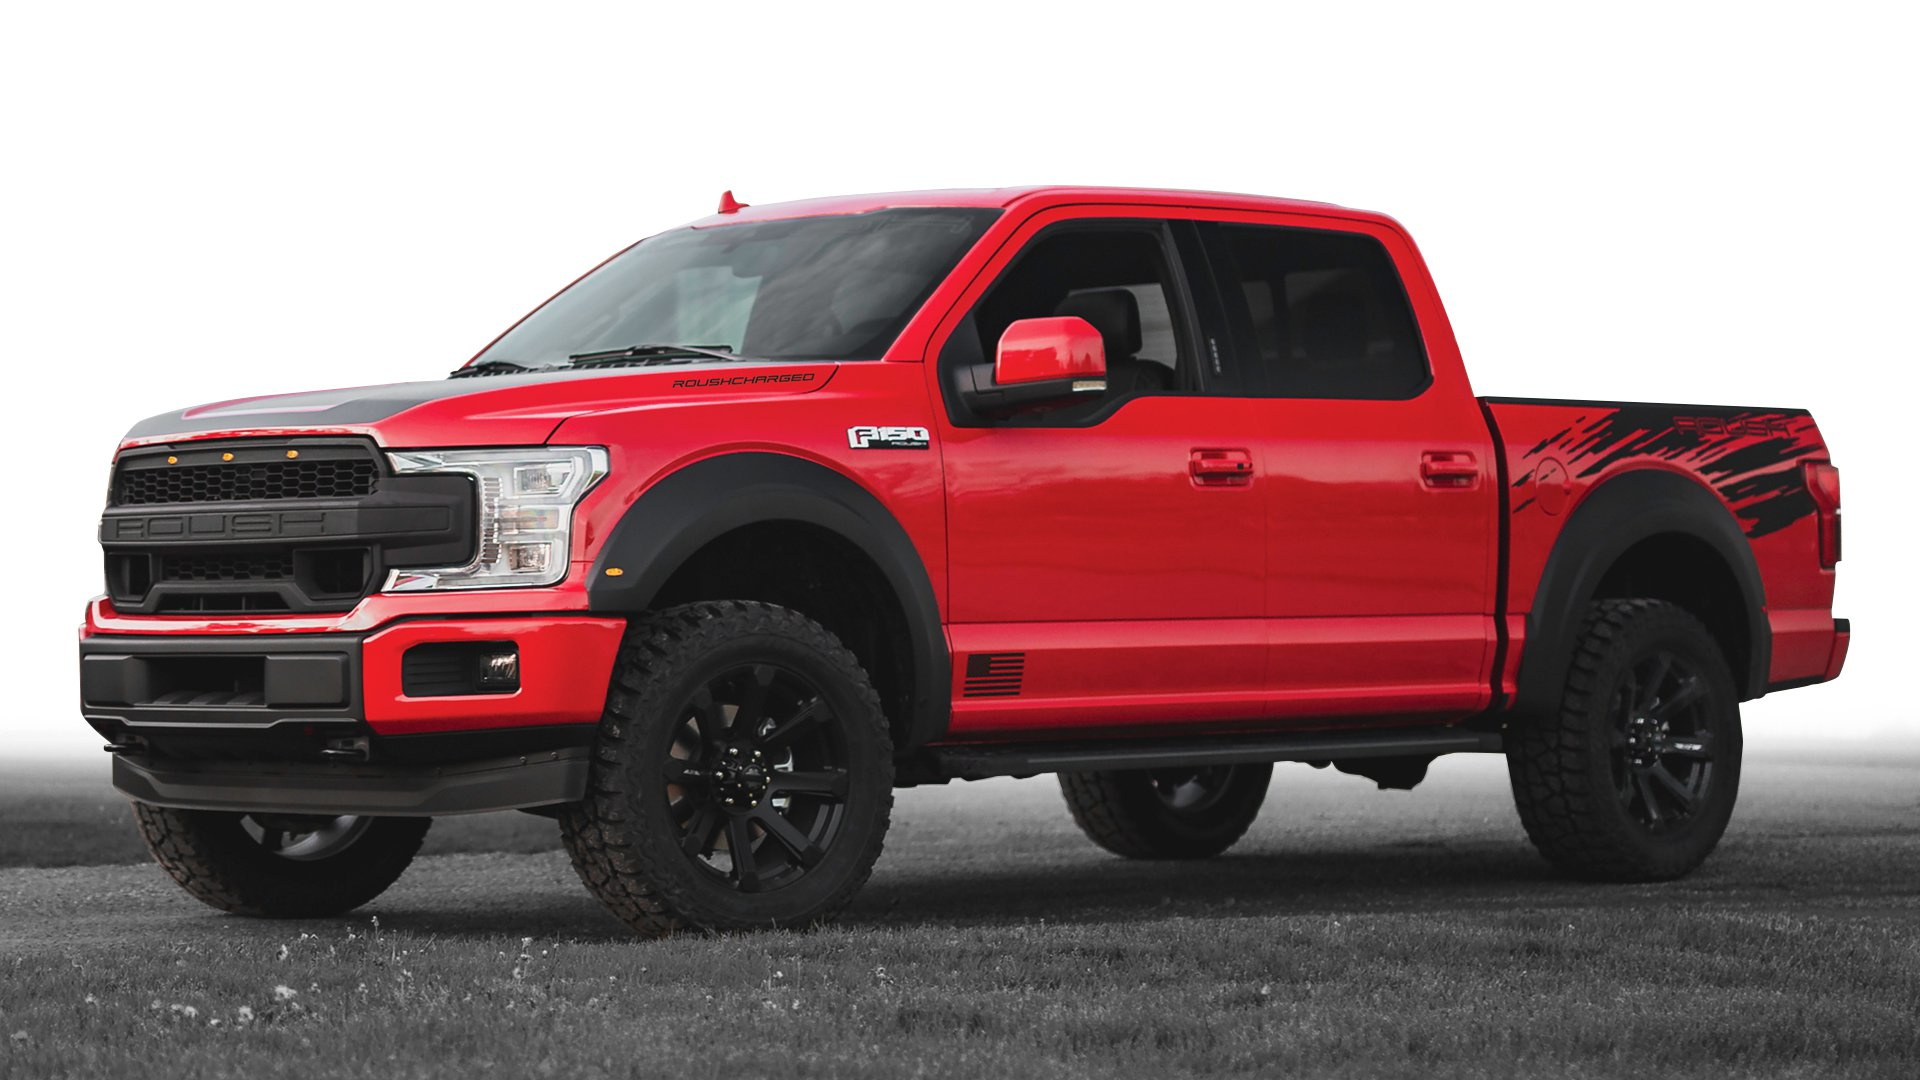 Car tuner Roush Performance has released the 2018 Roush F-150 SC, a custom version of the Ford F-150 pickup truck with a supercharger and lots of styling parts